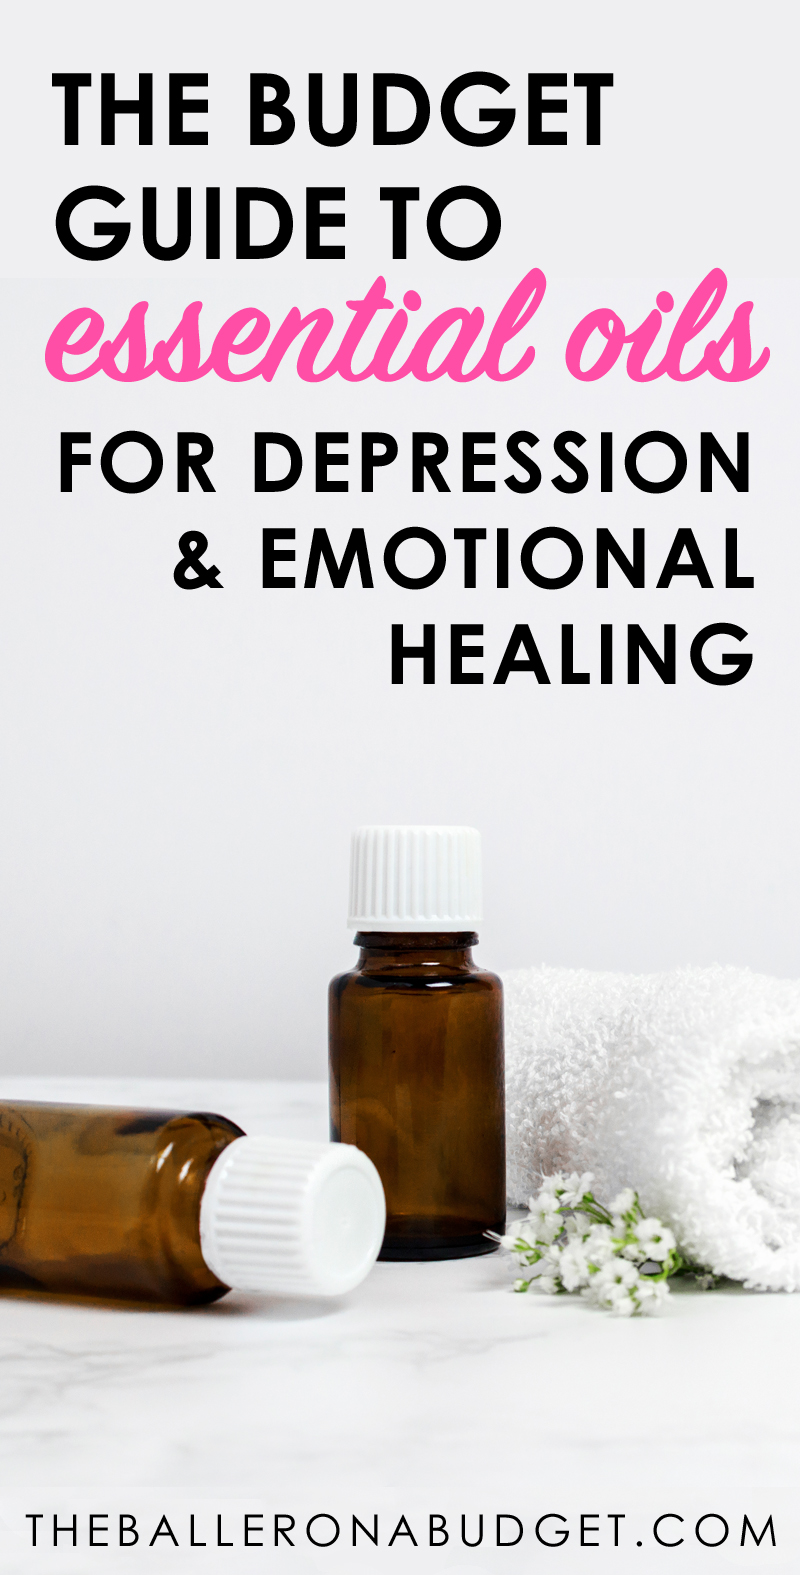 Essential oils can be a natural, effective and safe alternative to pharmaceutical antidepressants. This is the ultimate budget-friendly guide to therapeutic-grade essential oils to treat depression and encourage emotional healing. - www.theballeronabudget.com